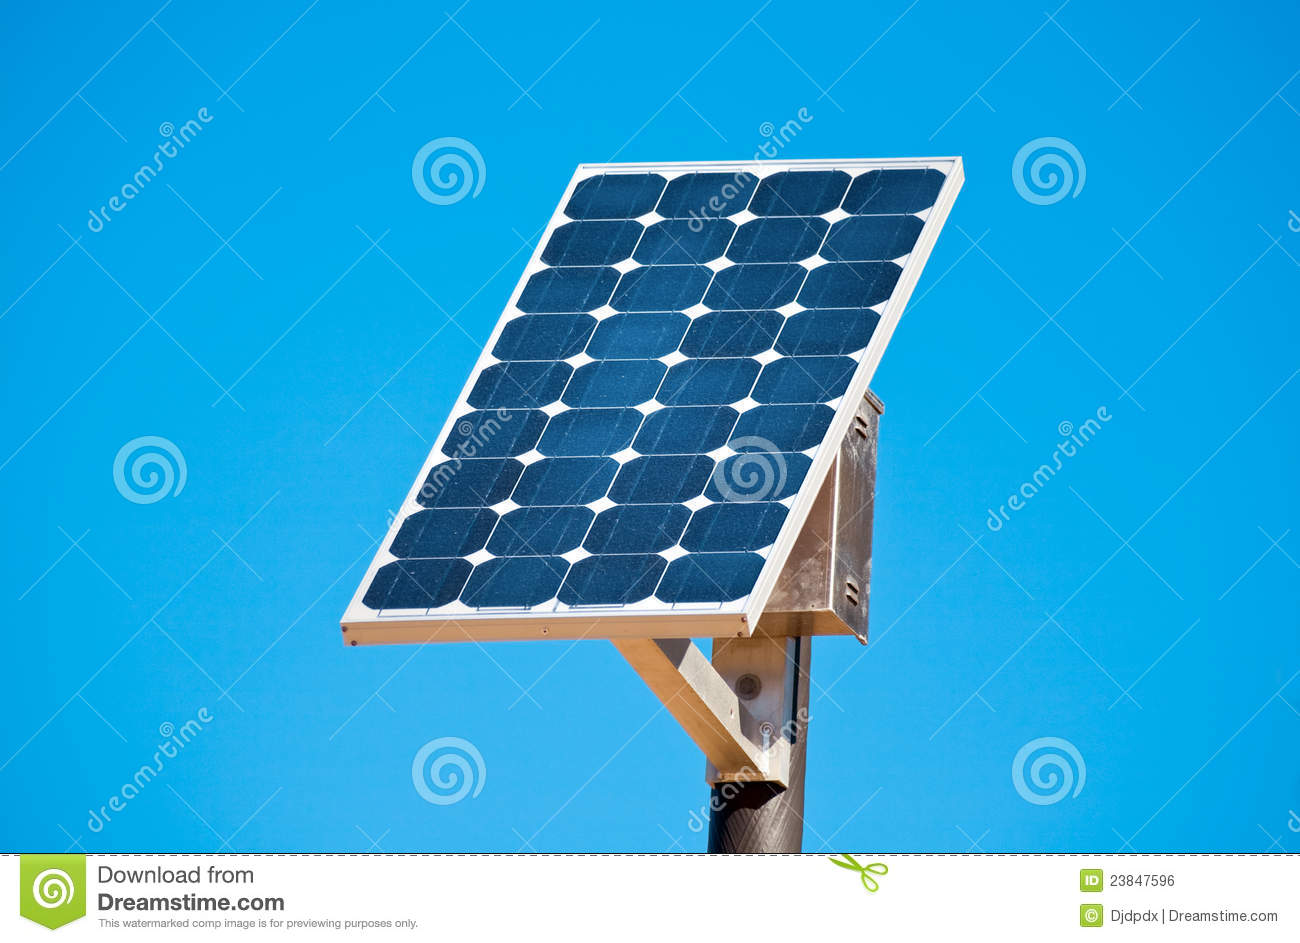 Royalty Free Stock Image Solar Panel Image 23847596